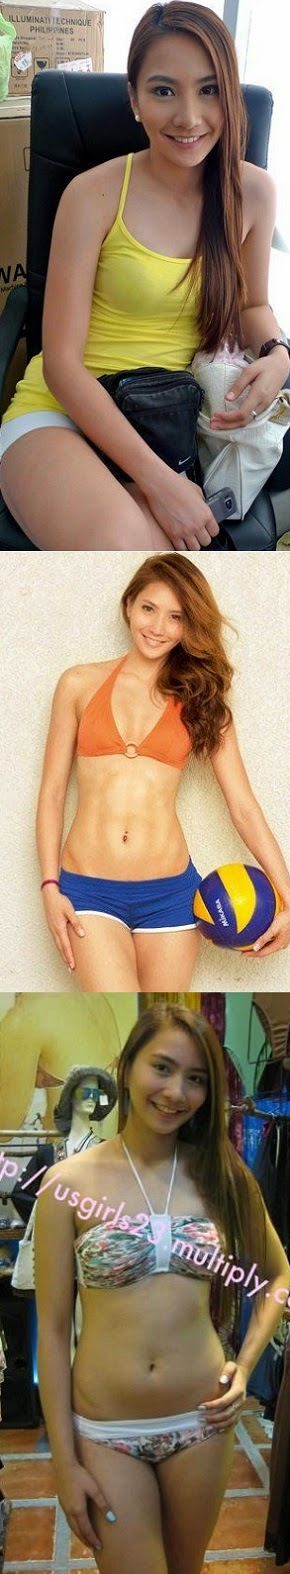 RACHEL  ANNE  DAQUIS  Photos!